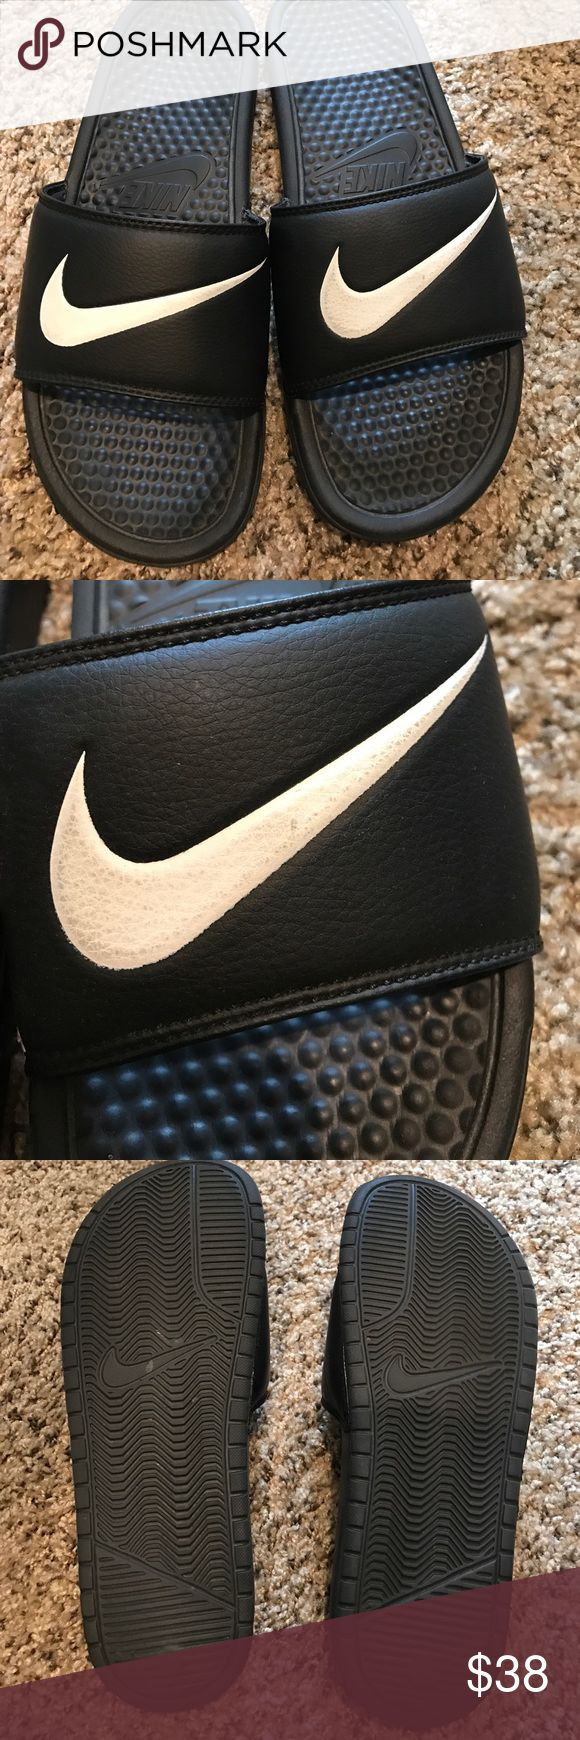 NIKE SLIDES MENS 8 women's 9.5 Good condition haven't worn in awhile. Still in good condition! Please view all pictures. One slide has a little dirt on the Nike swoop. NO TRADES/MERC/HOLDS Nike Shoes Sandals